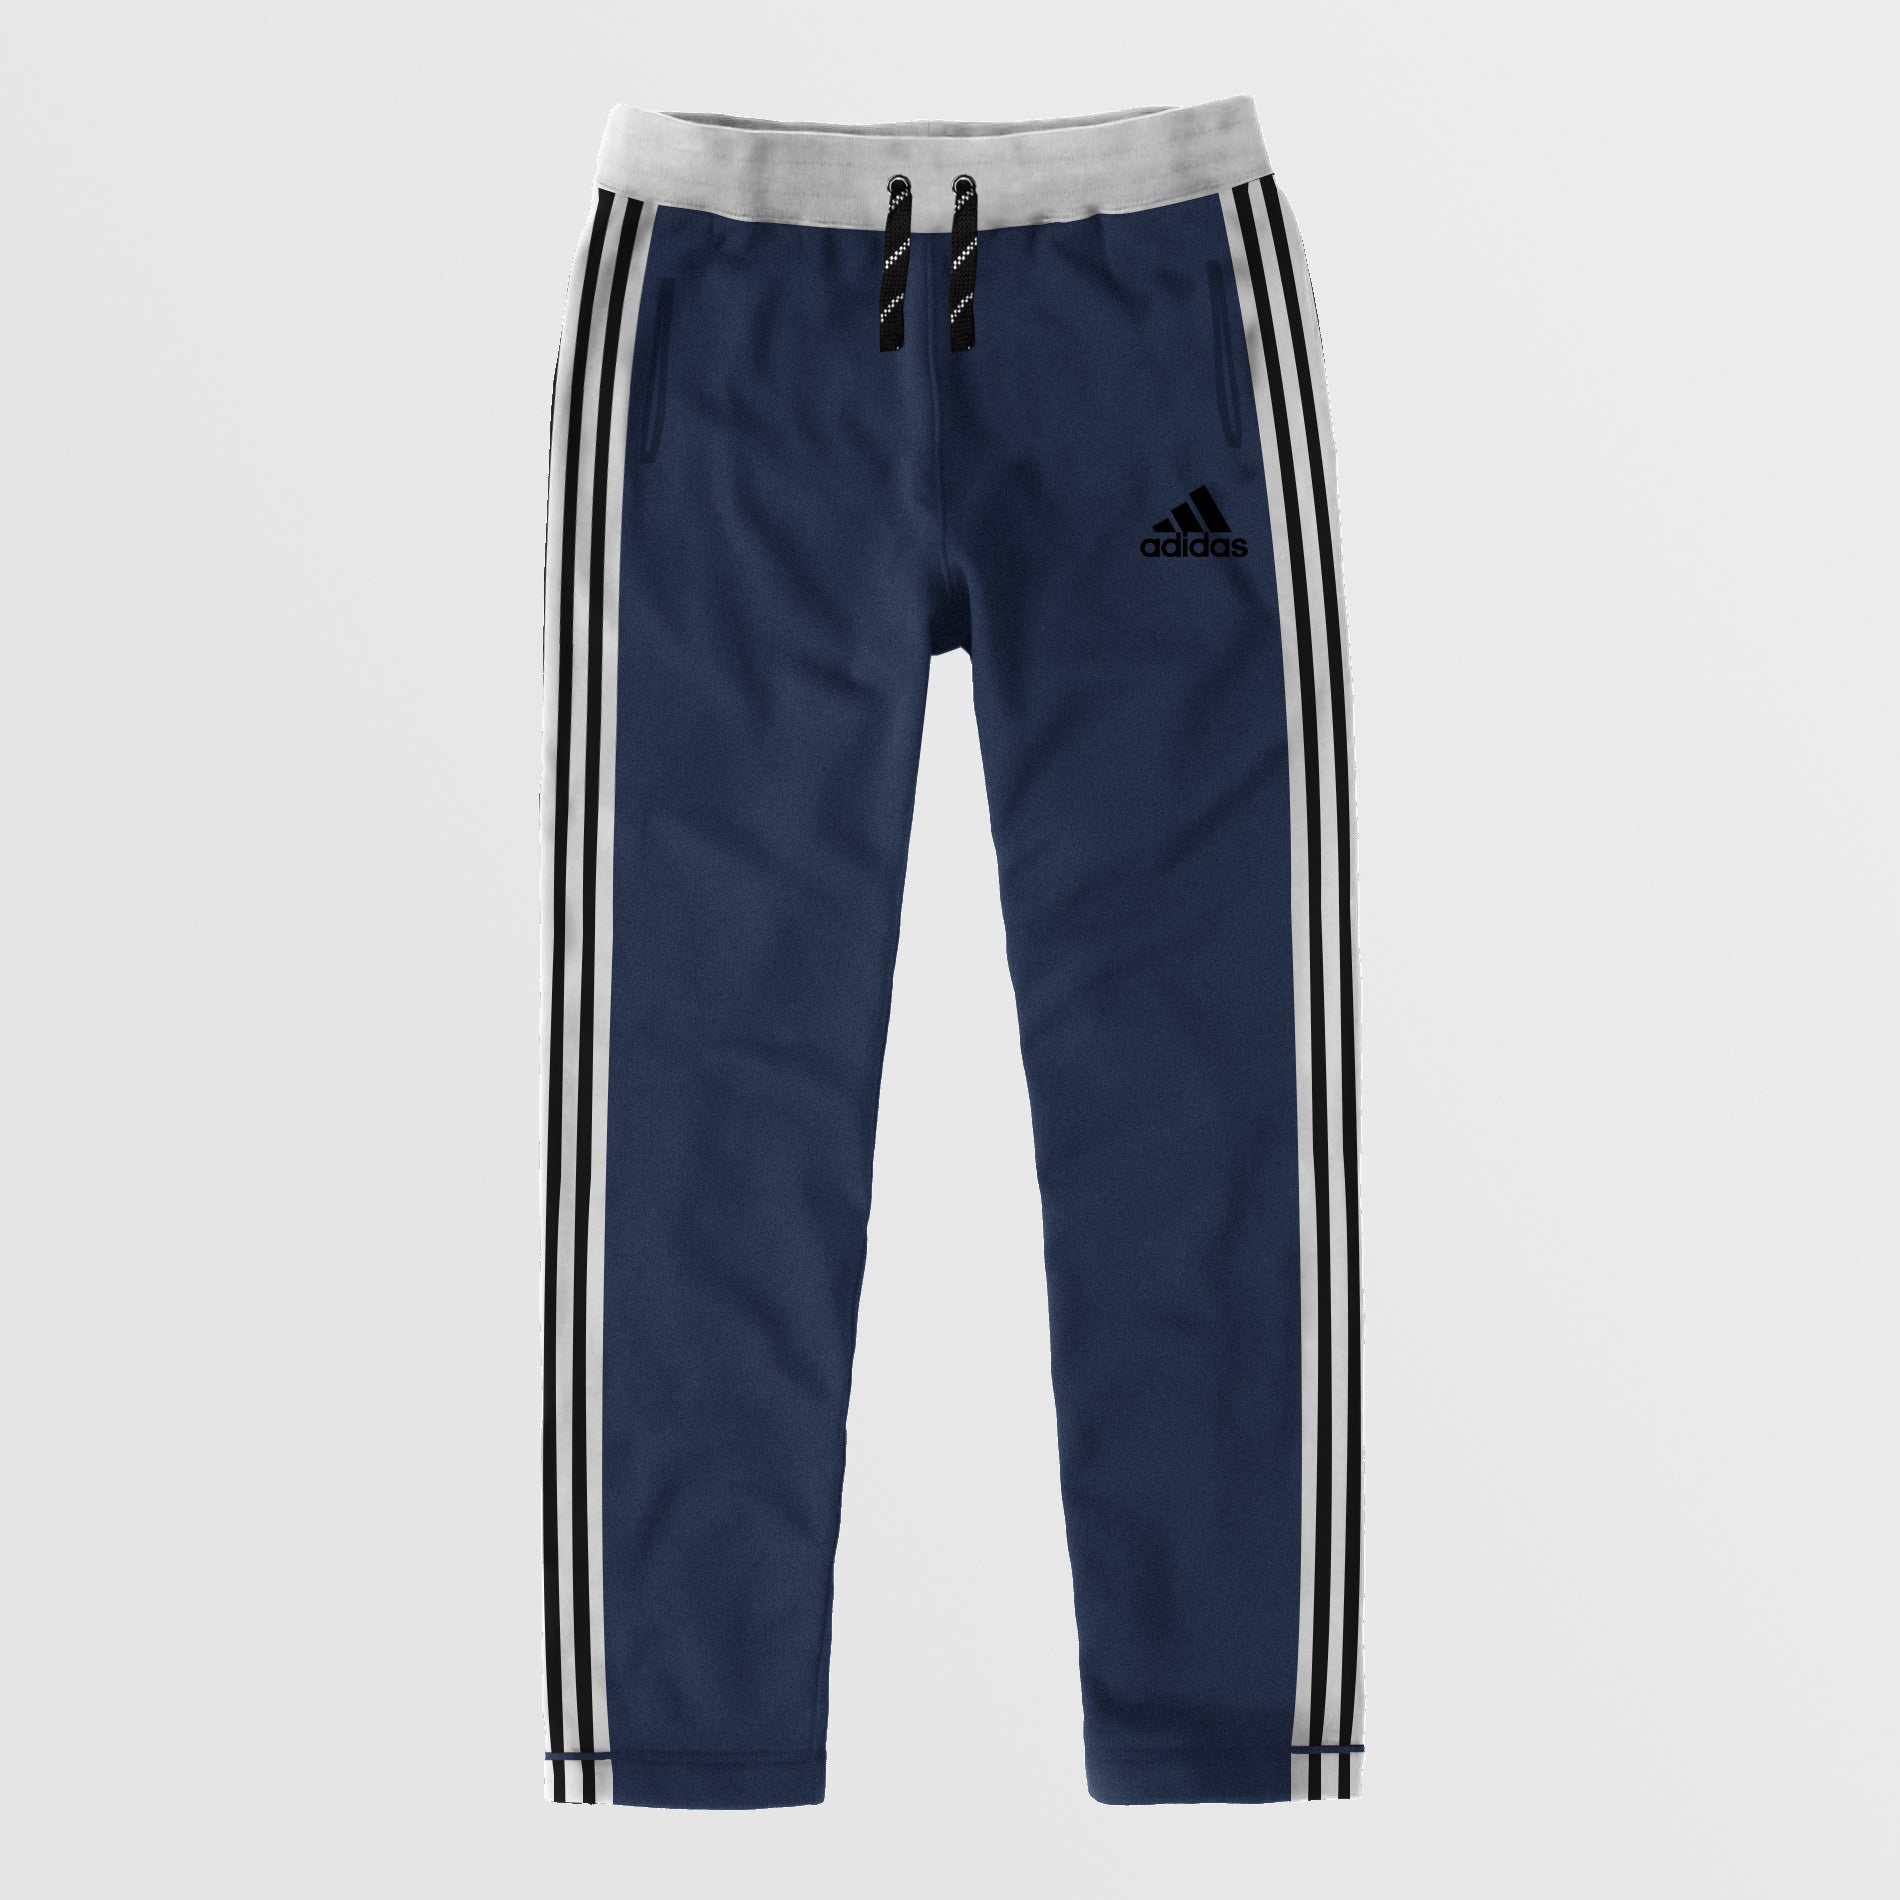 Adidas Single Jersey Regular Fit Trouser For Men-Light Navy Melange With Black Stripes-NA8795